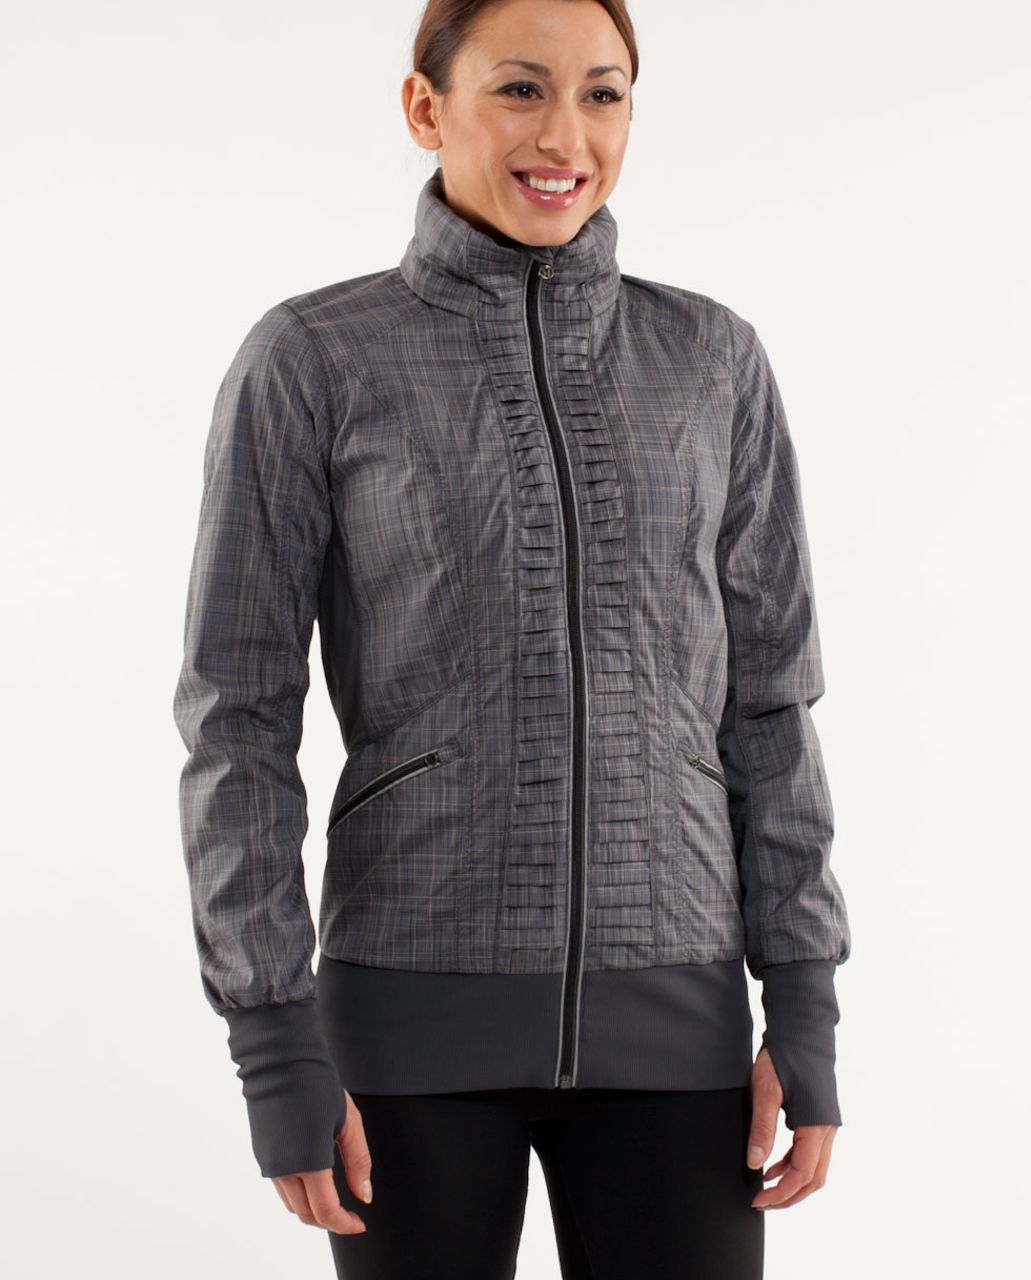 Lululemon Run:  Back On Track Jacket - Coal Pig Pink Shale Stripe /  Coal